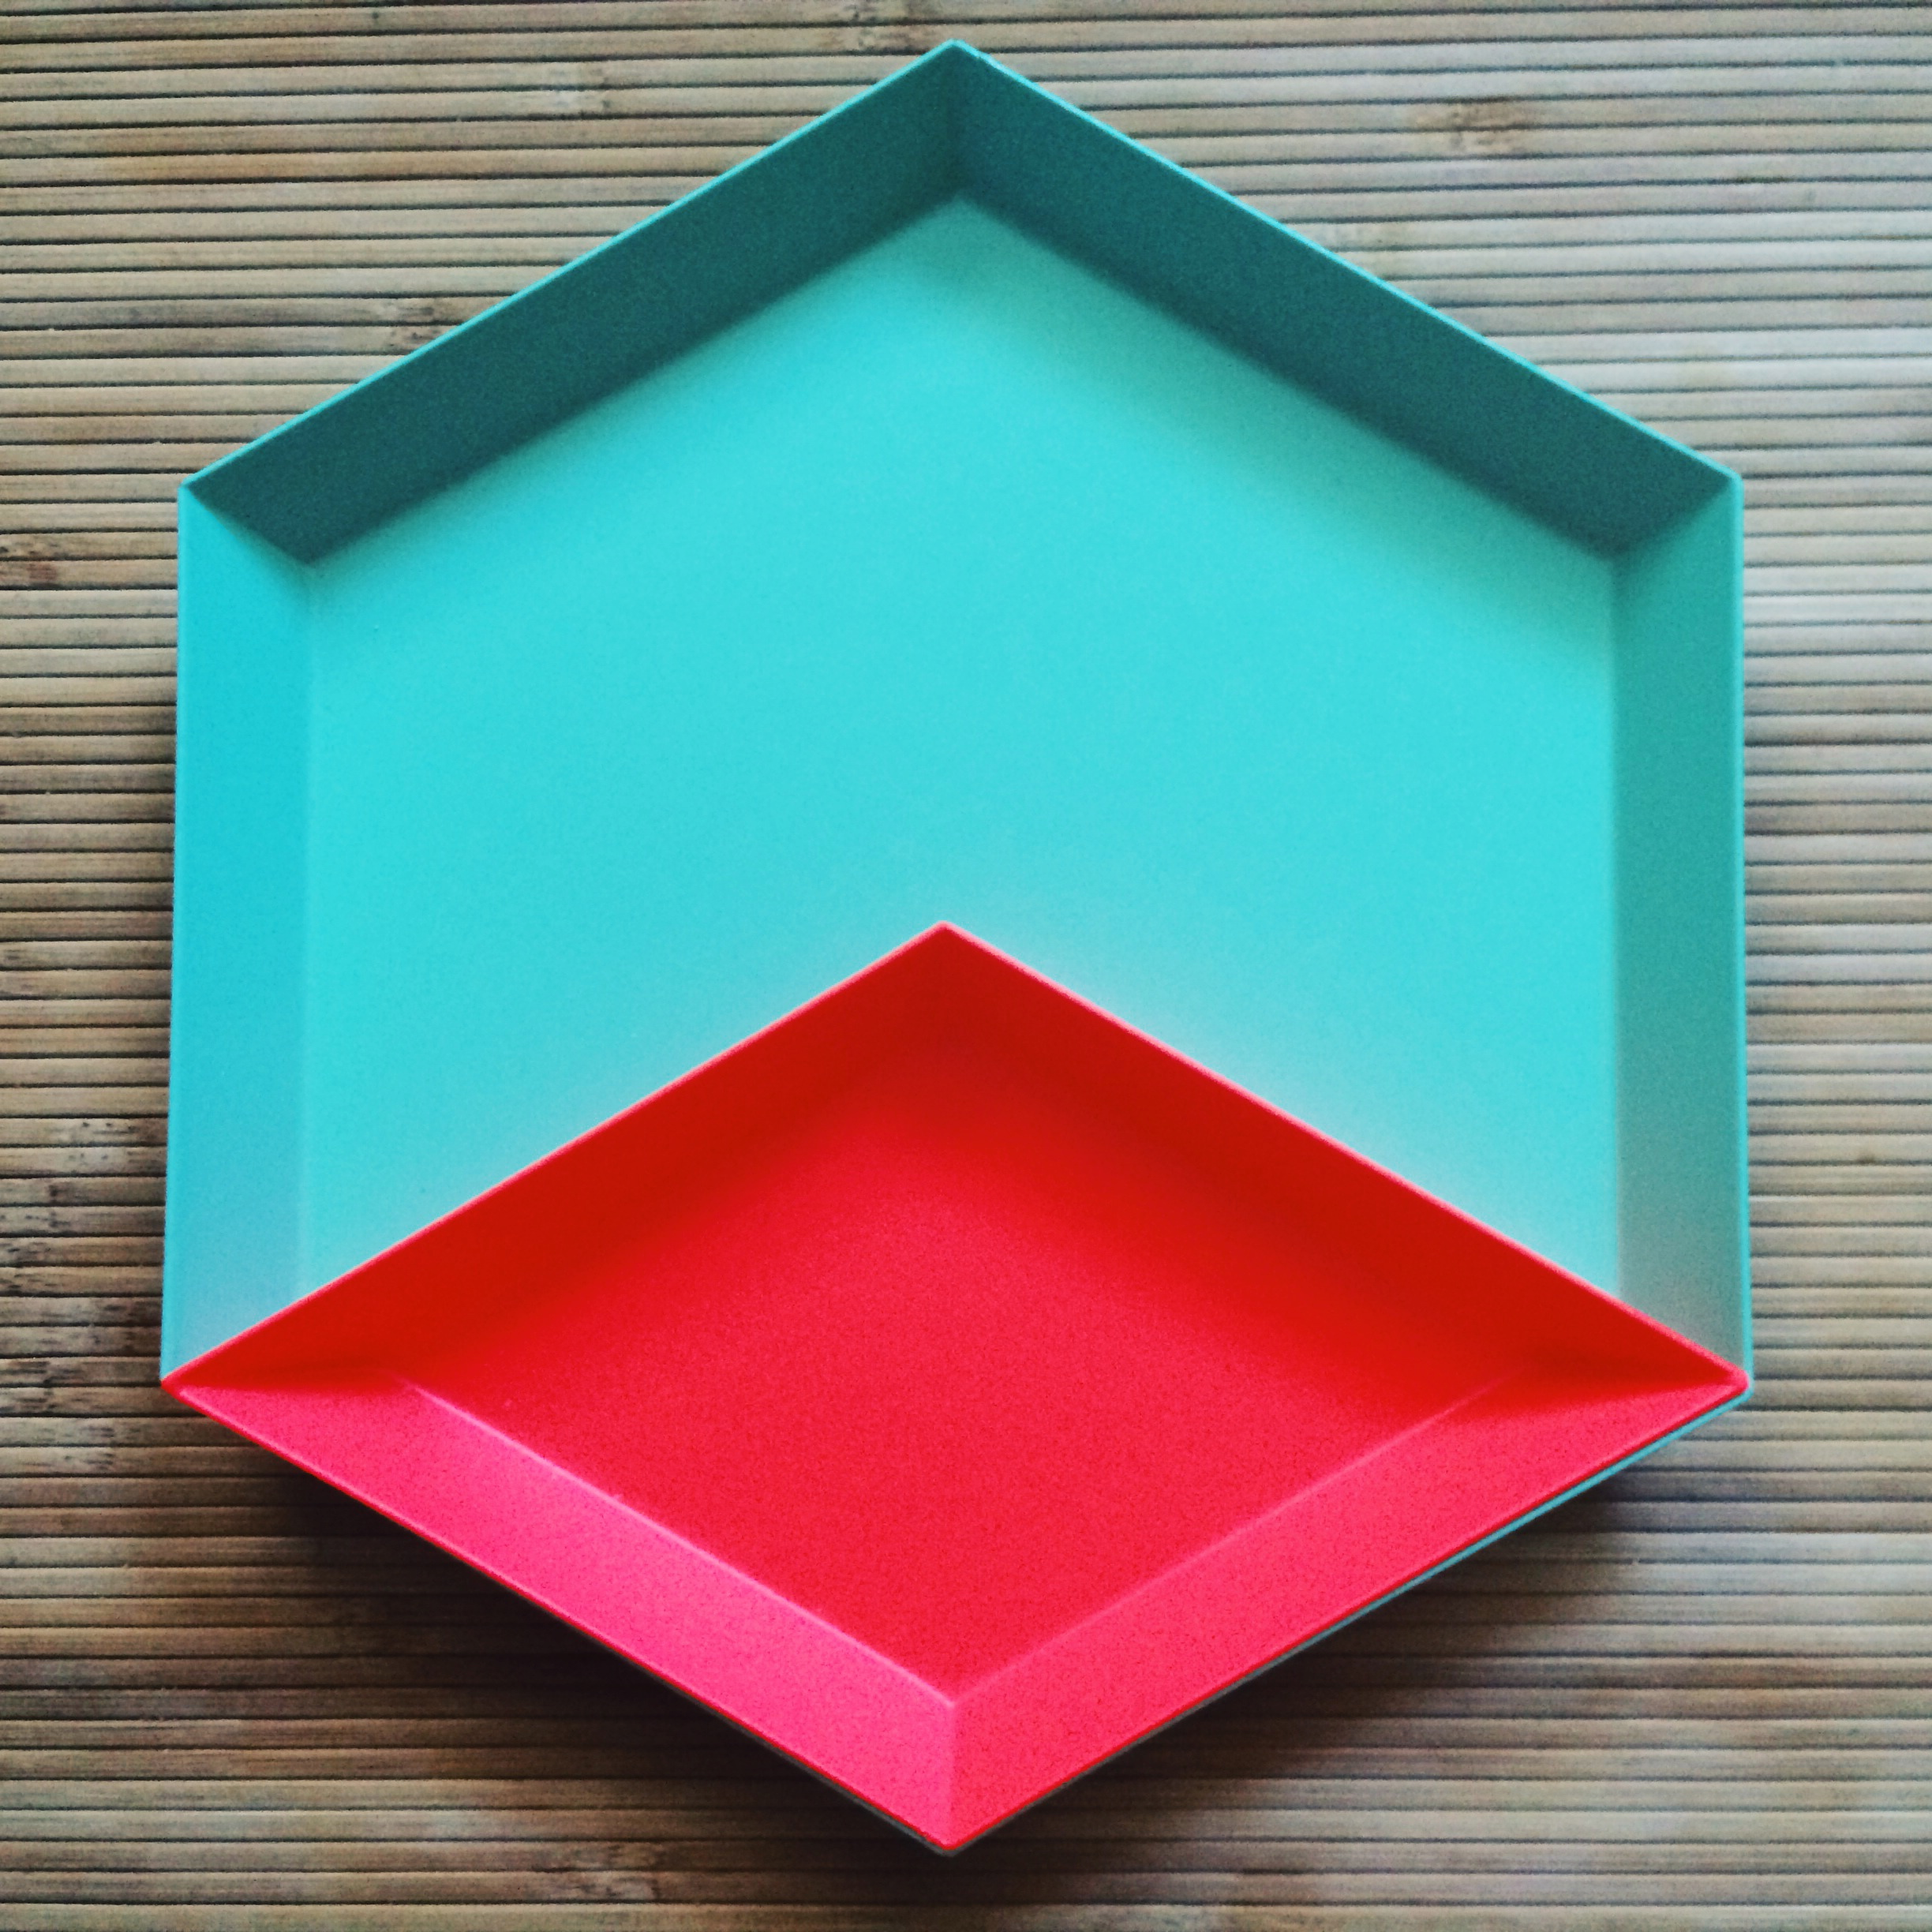 hay kaleido  trays, because this is the perfect color combination.